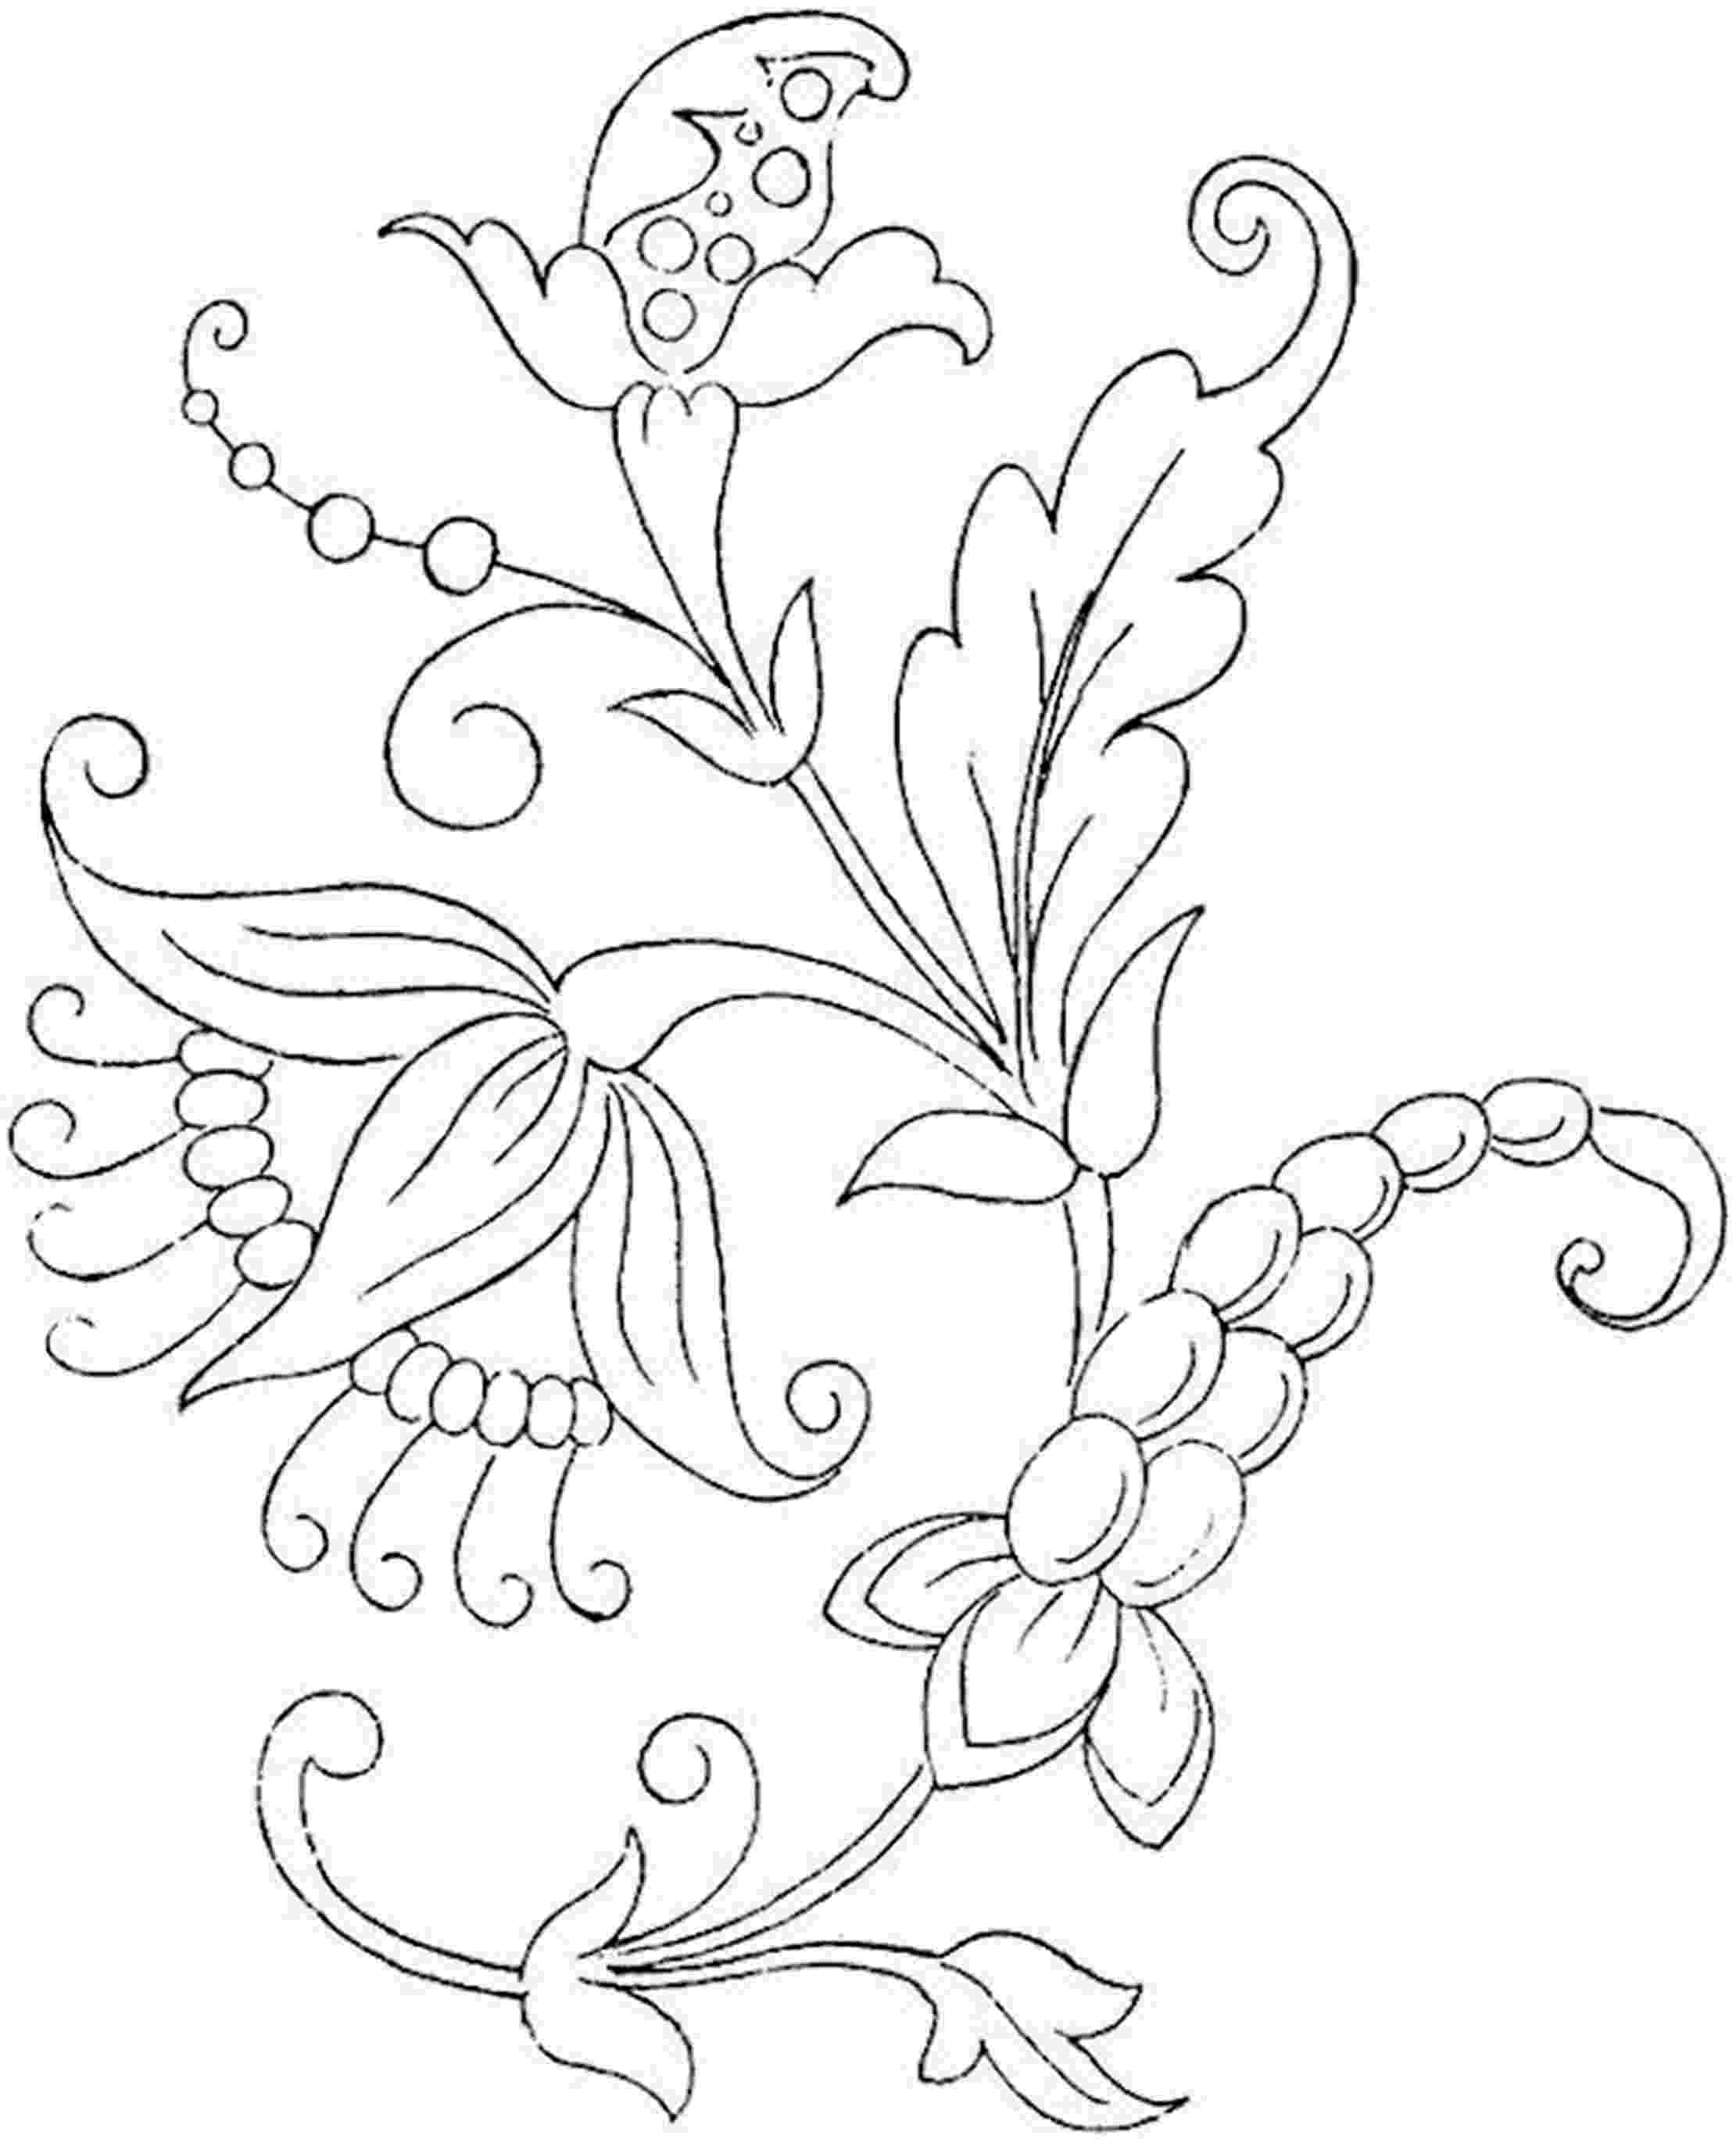 flowers printable coloring pages free printable flower coloring pages for kids best coloring flowers pages printable 1 1